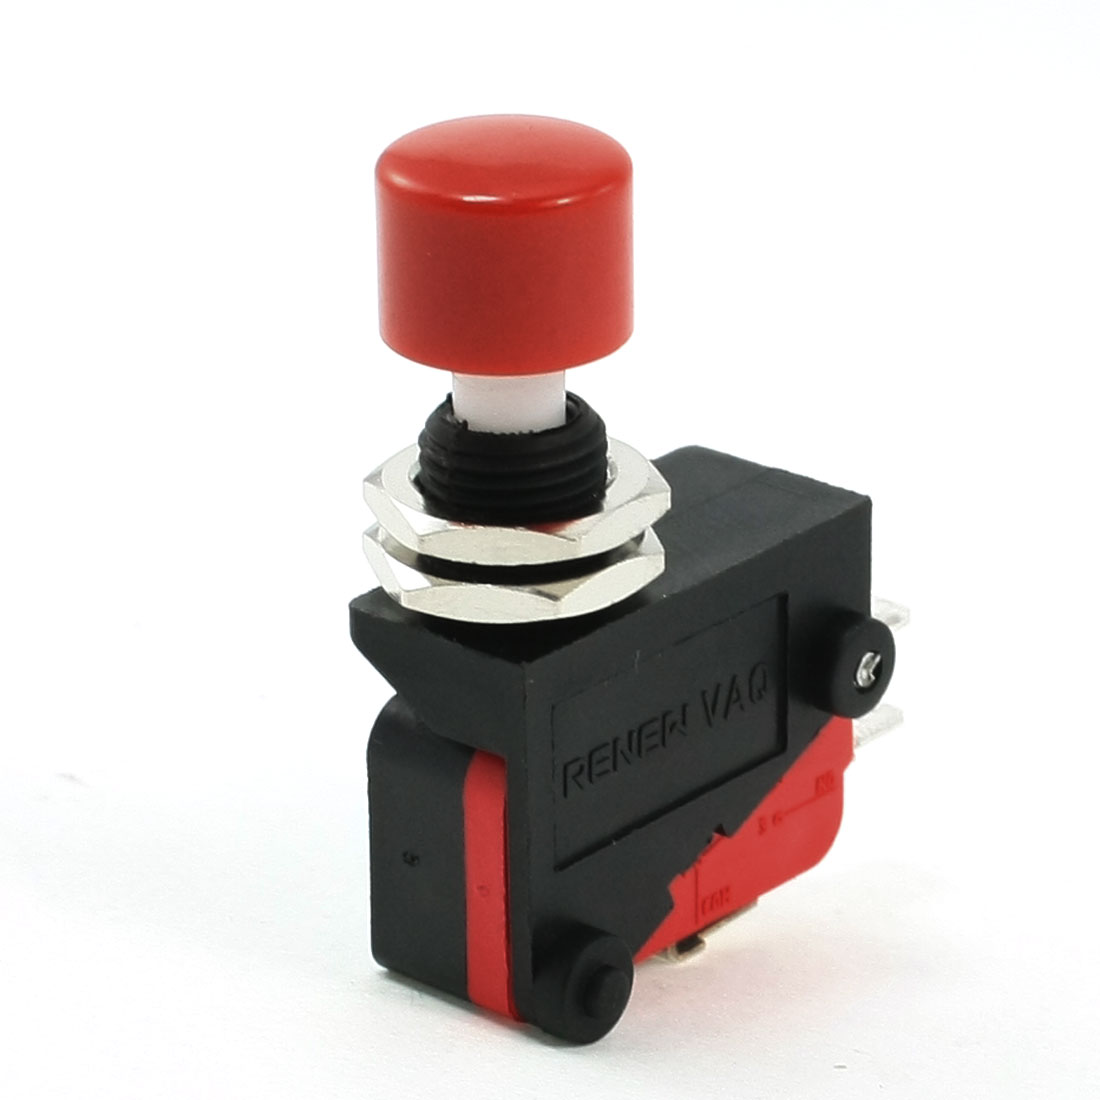 AC 250V 16A SPDT 3P Momentary Red Push Button Miniature Micro Limit Switch